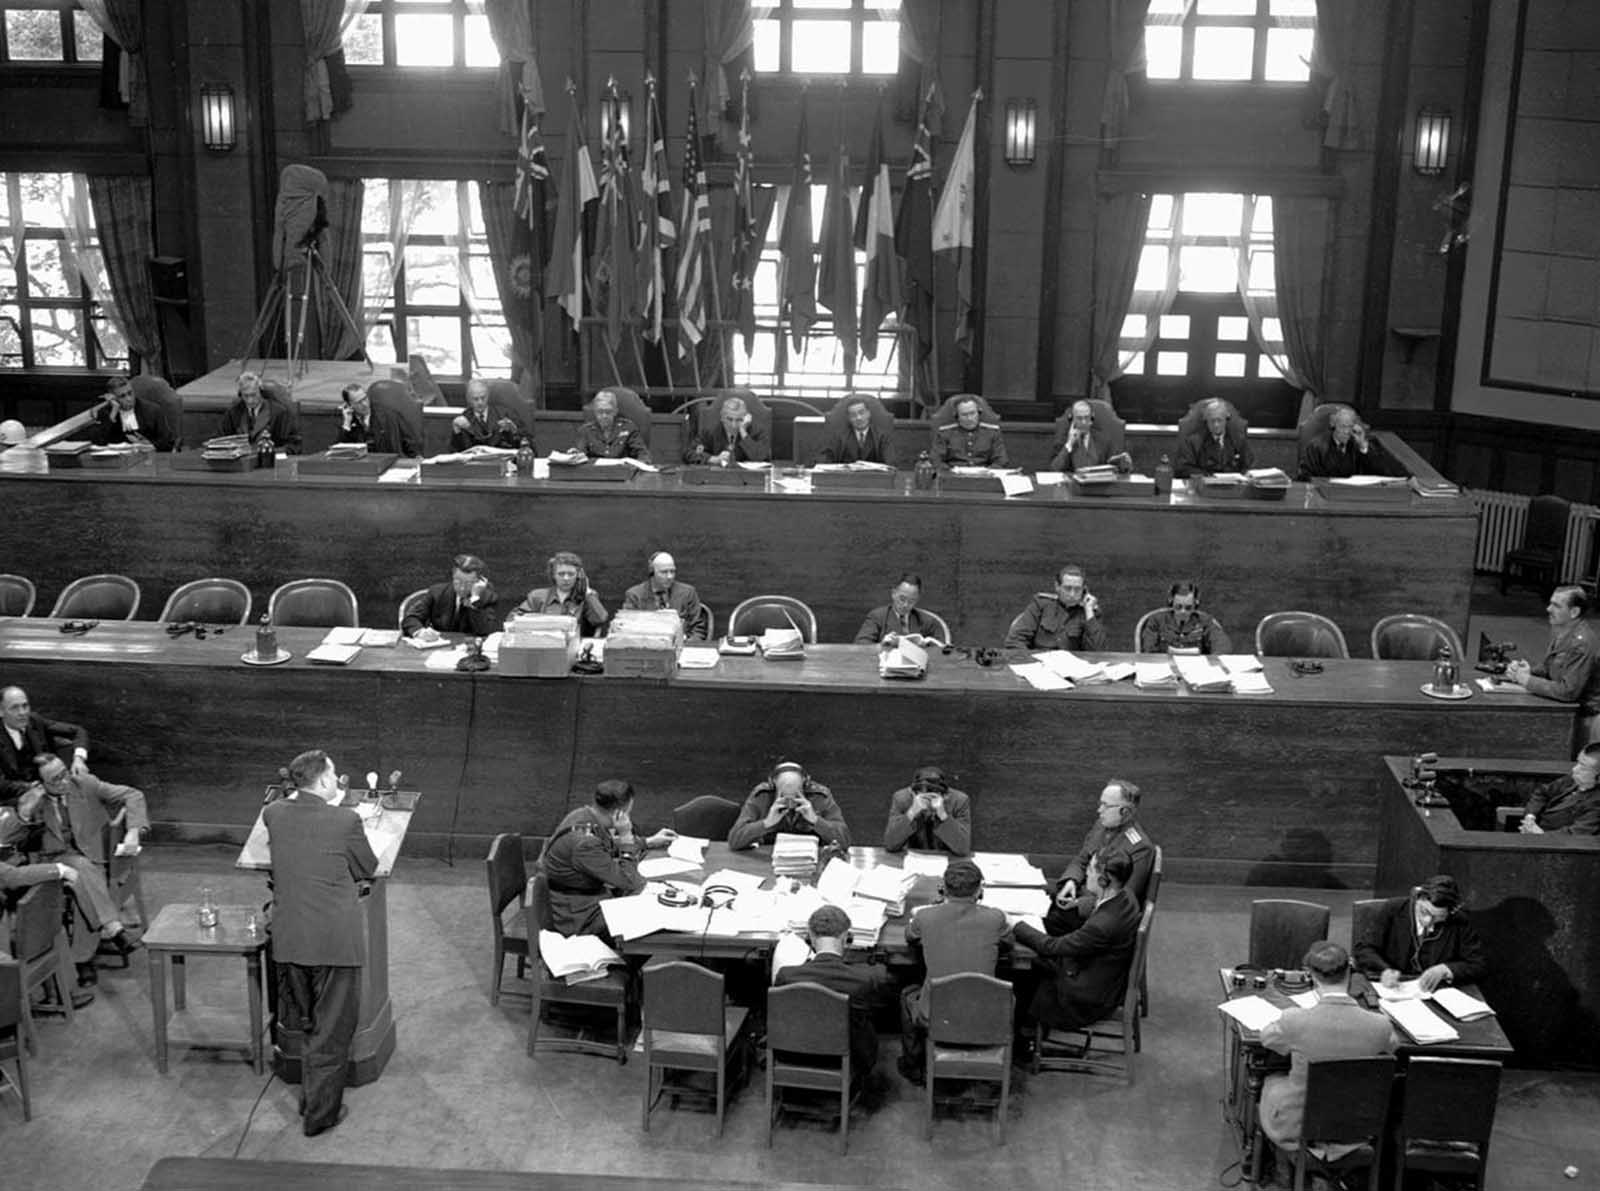 A general view of the International Military Tribunal for the Far East meeting in Tokyo in April, 1947. On May 3, 1946, the Allies began the trial of 28 Japanese civilian and military leaders for war crimes. Seven were hanged and others were sentenced to prison terms.